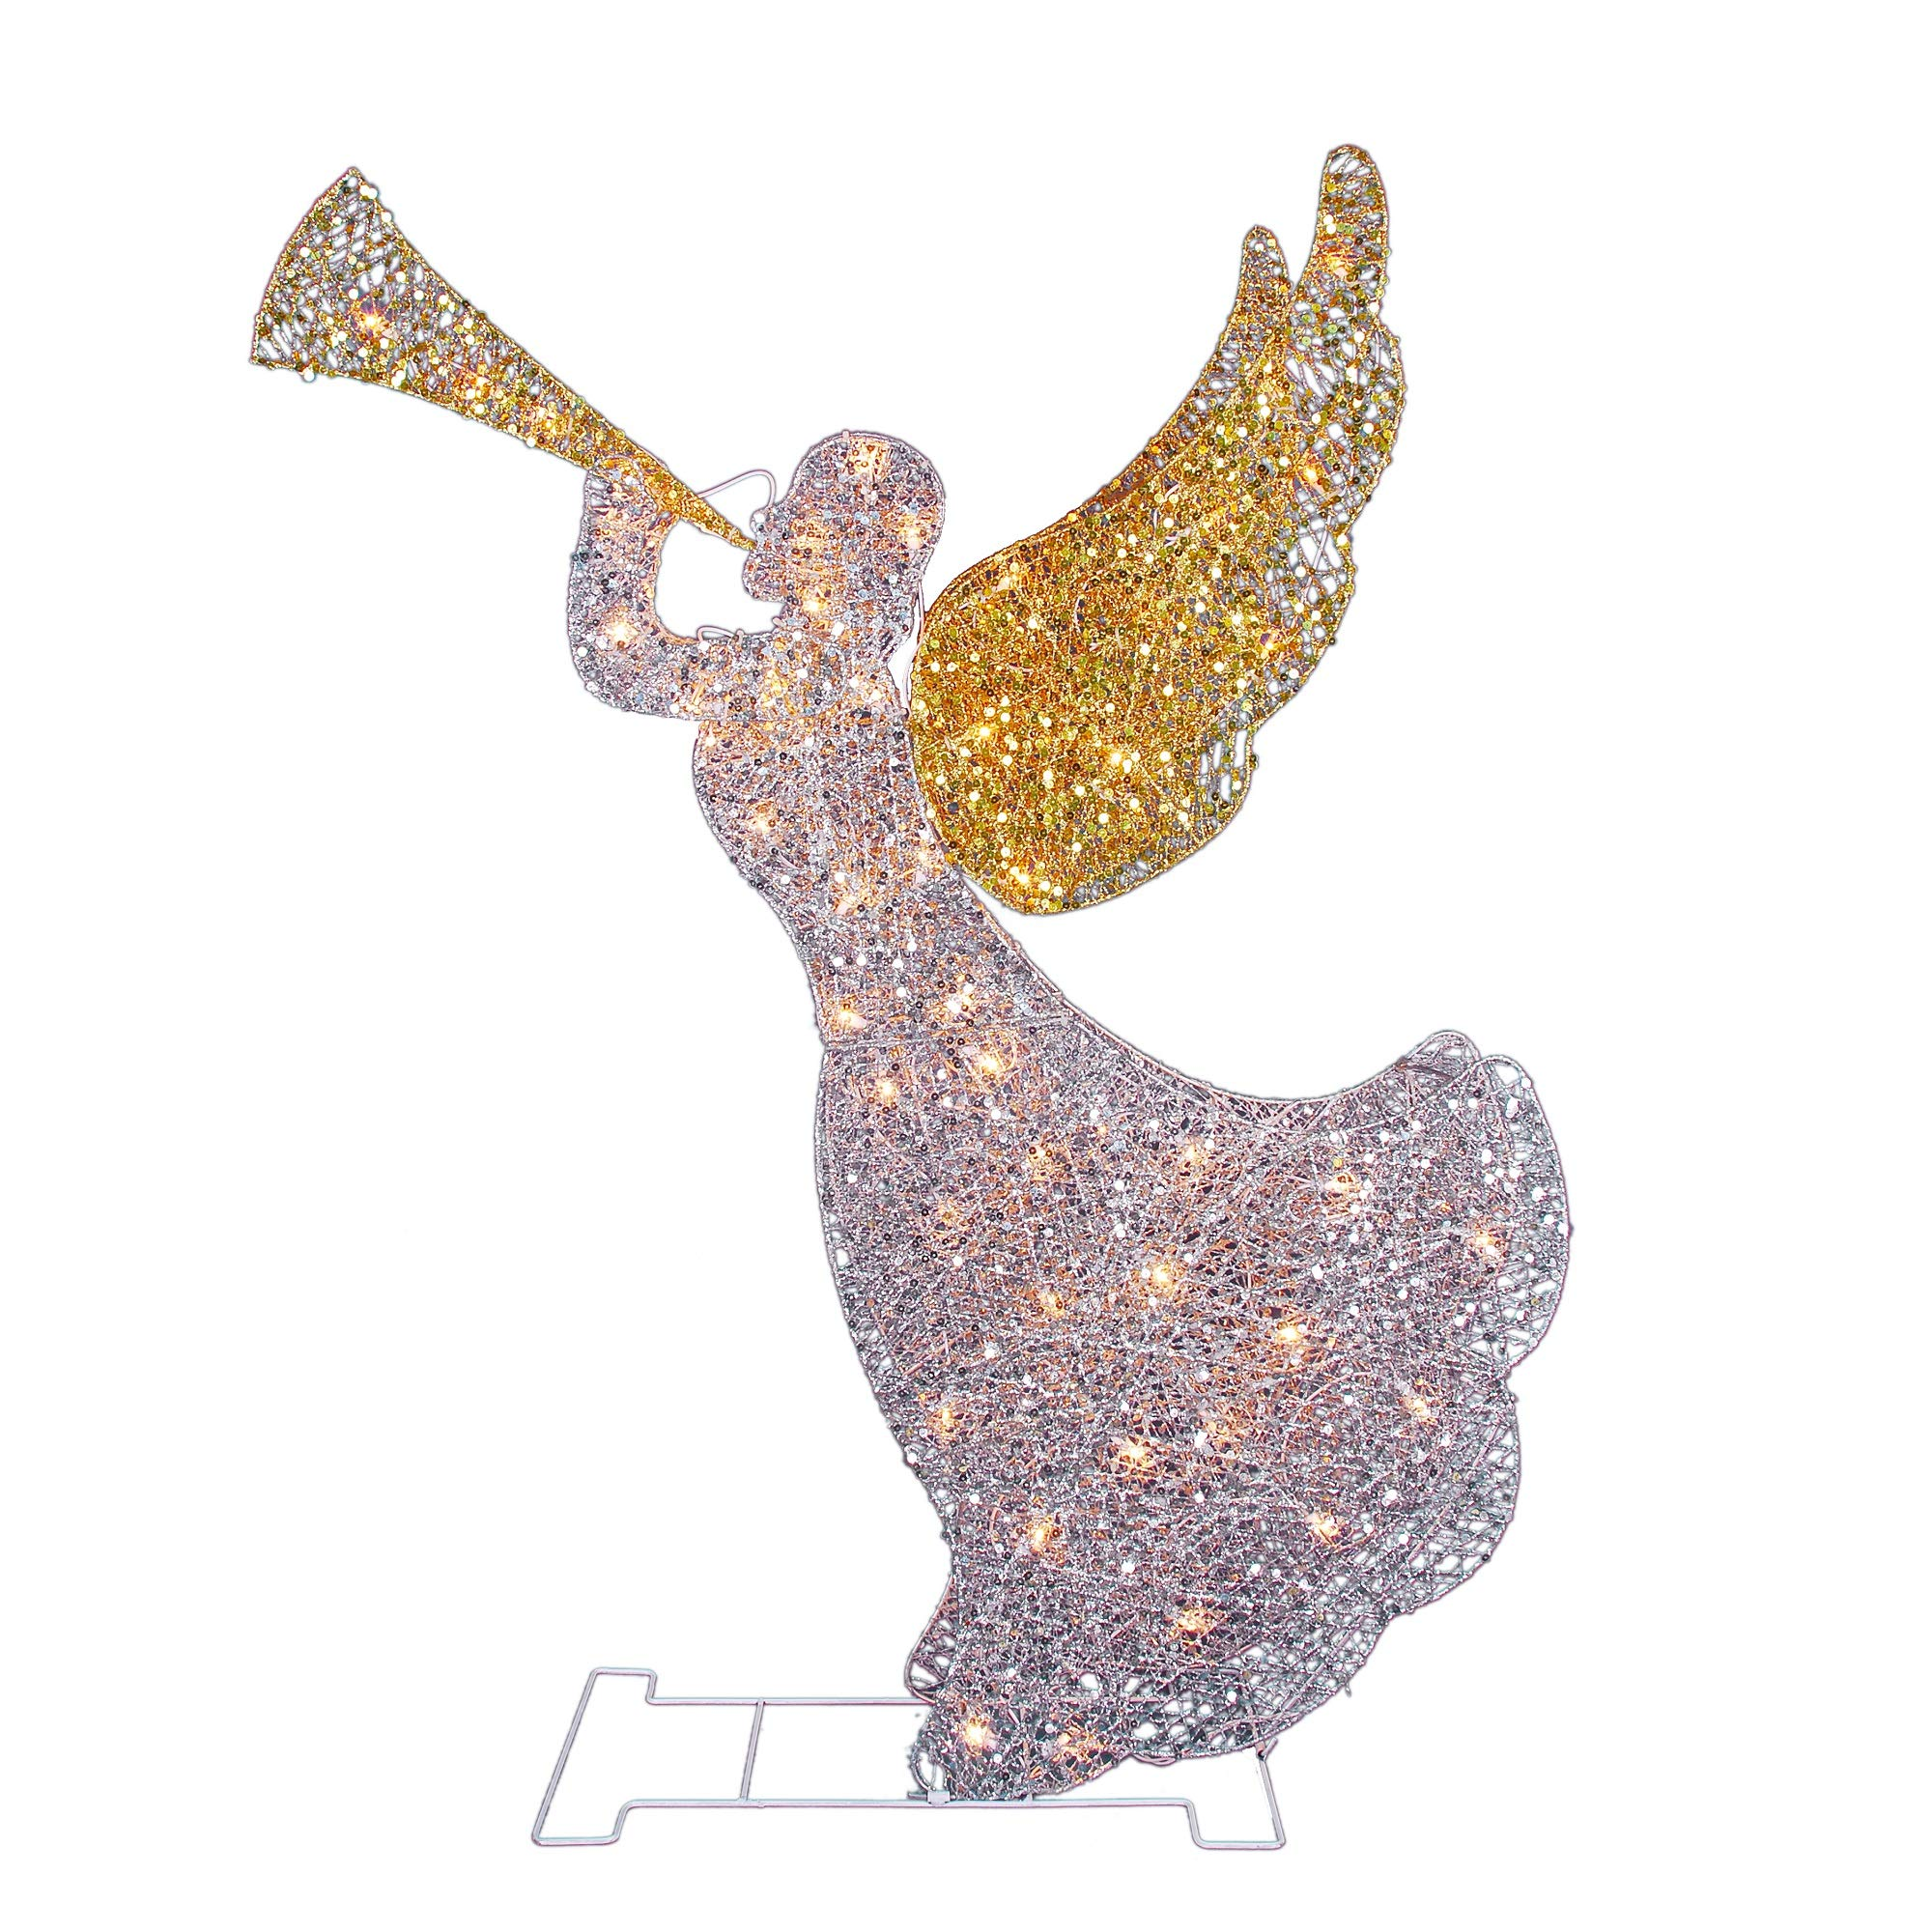 Northlight 46'' Lighted Glitter Sequin 3-D Angel with Trumpet Christmas Outdoor Decoration - Clear Lights by Northlight